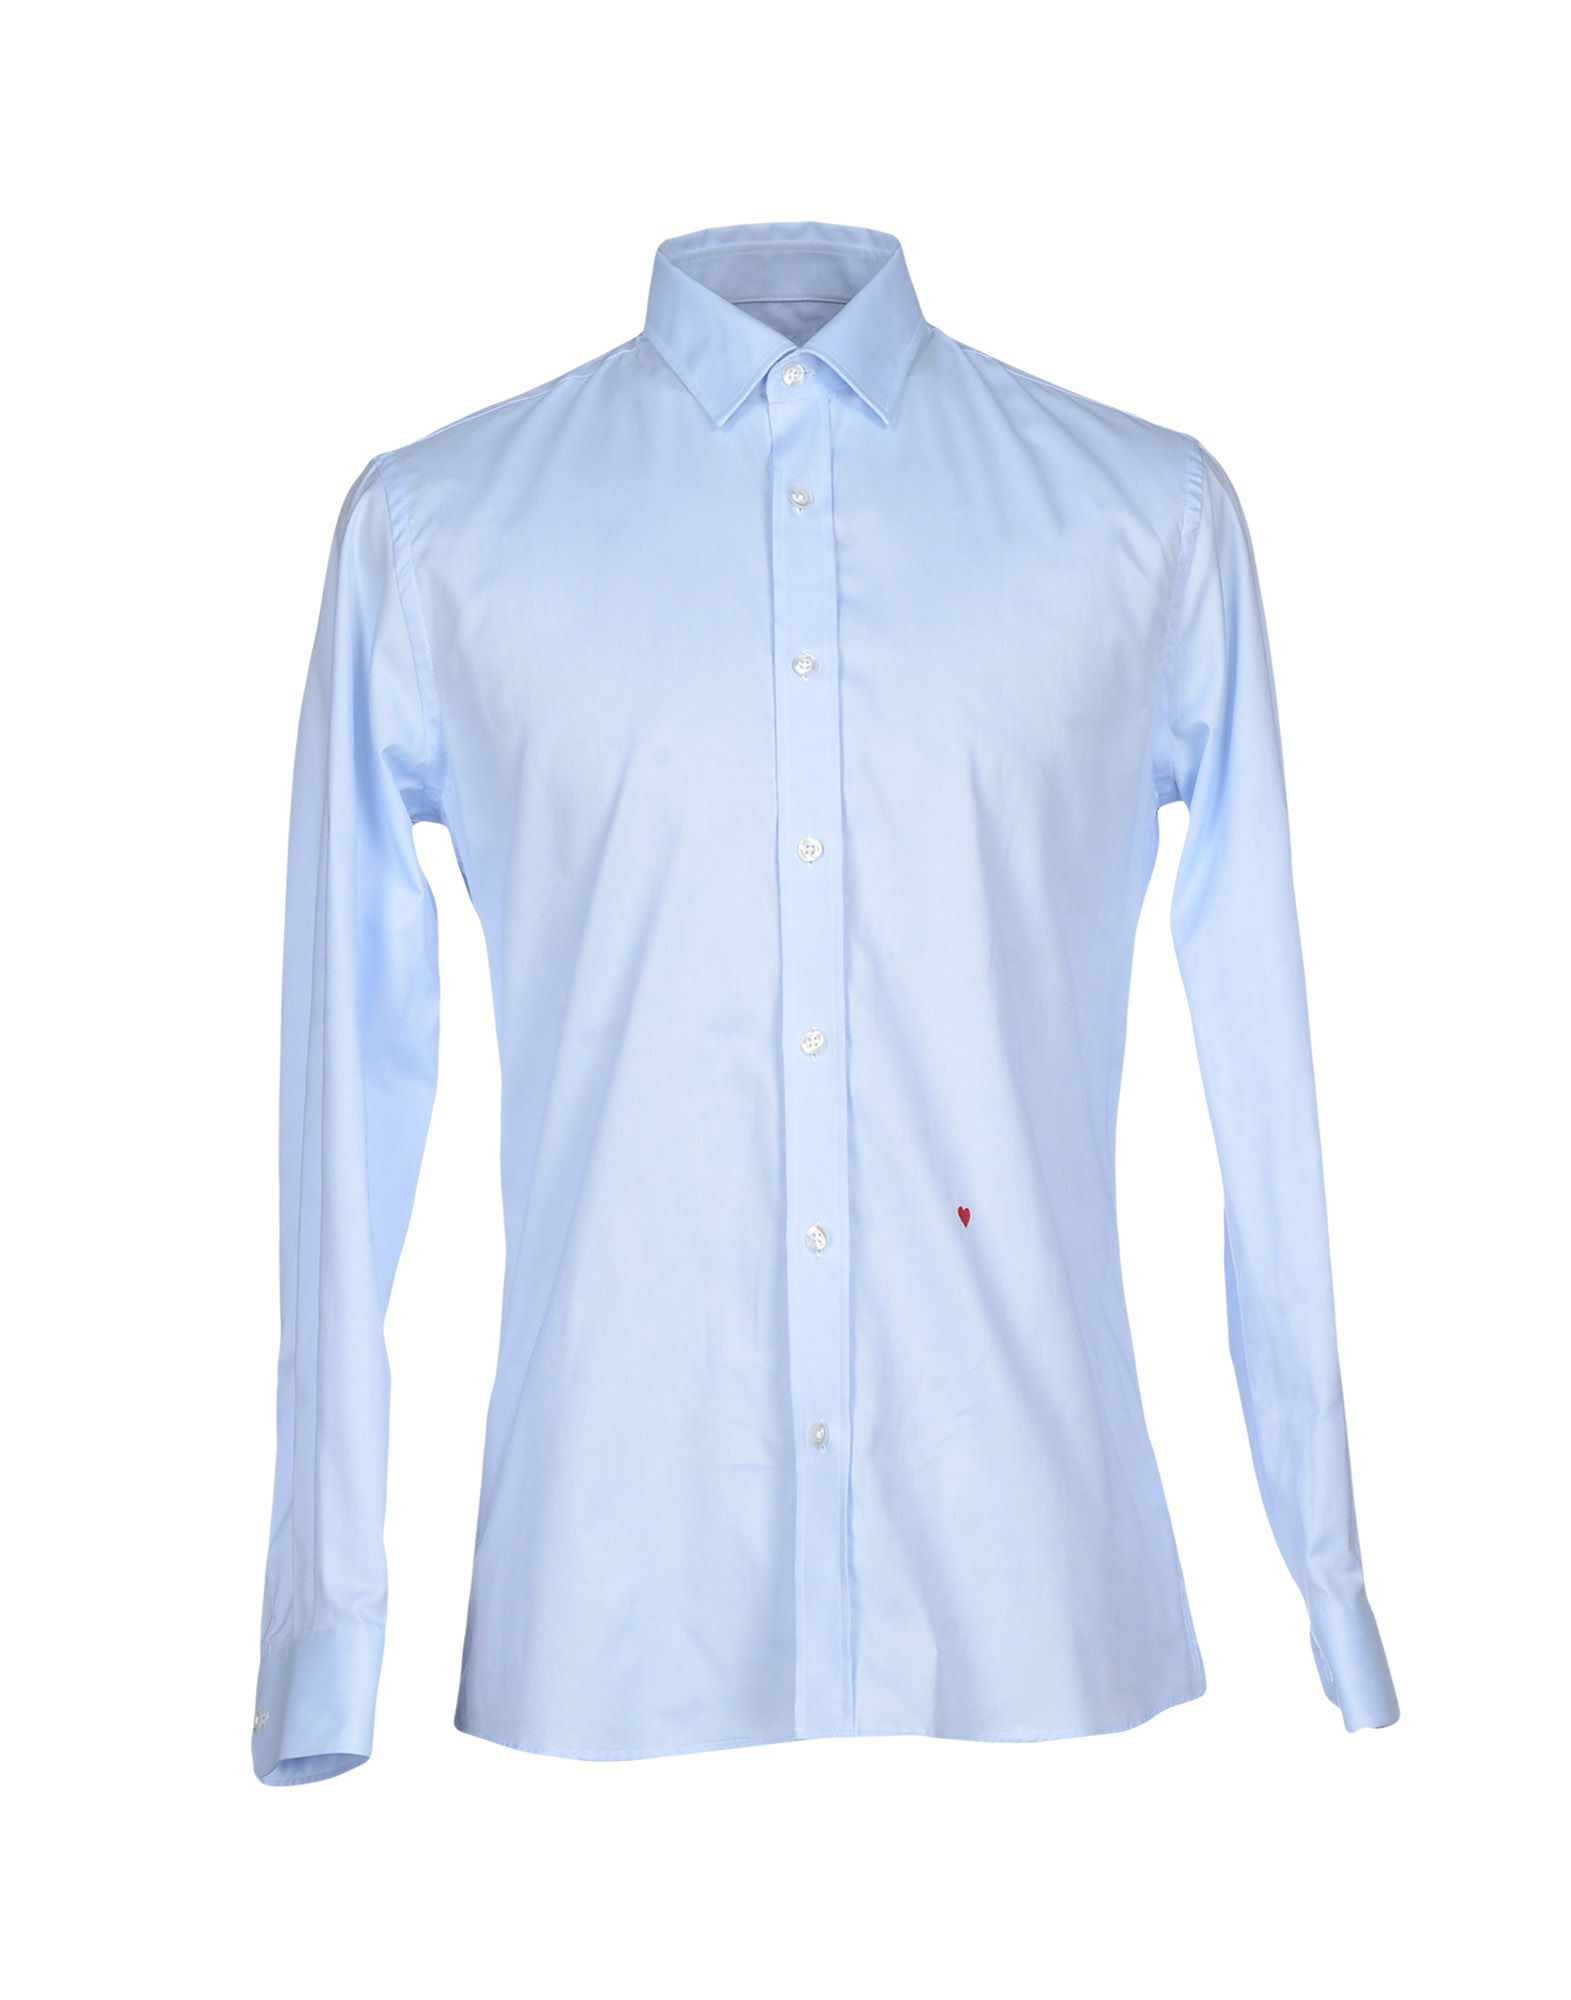 lyst moschino shirt in blue for men